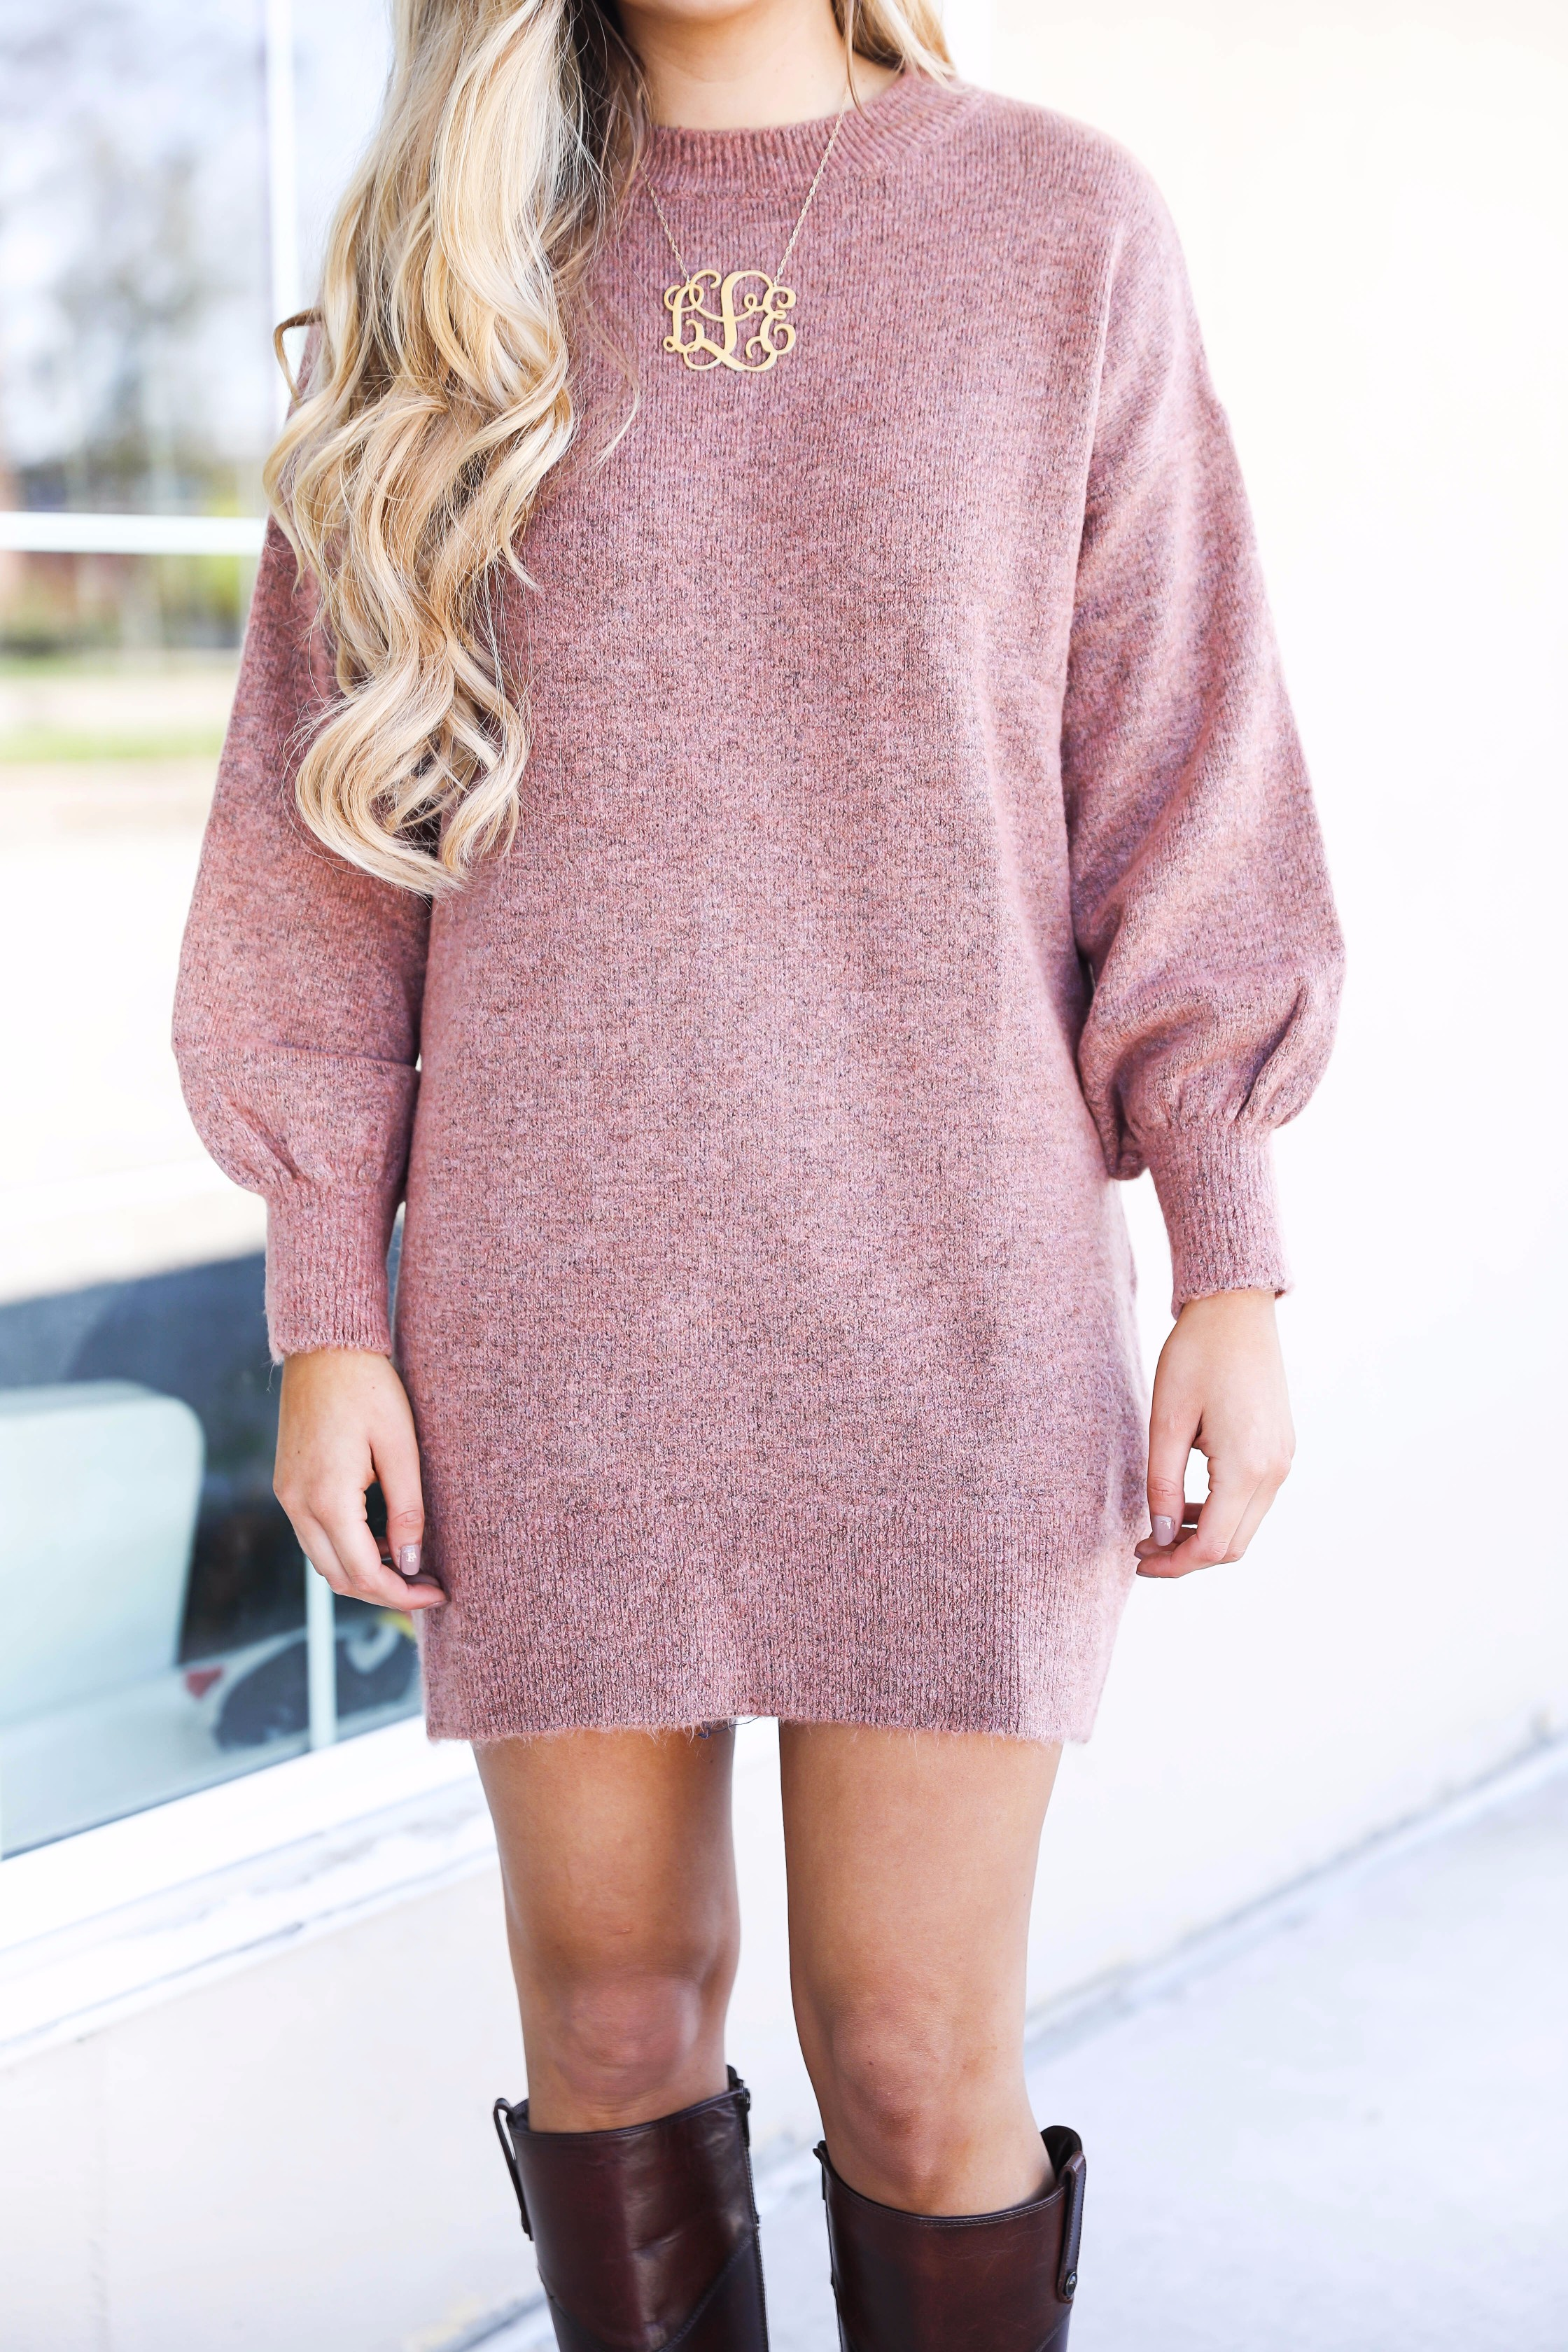 Sweater dress with puffy sleeves and brown riding boots! Paired with a large monogram necklace, perfect fall outfit! Details on fashion blog daily dose of charm by lauren lindmark